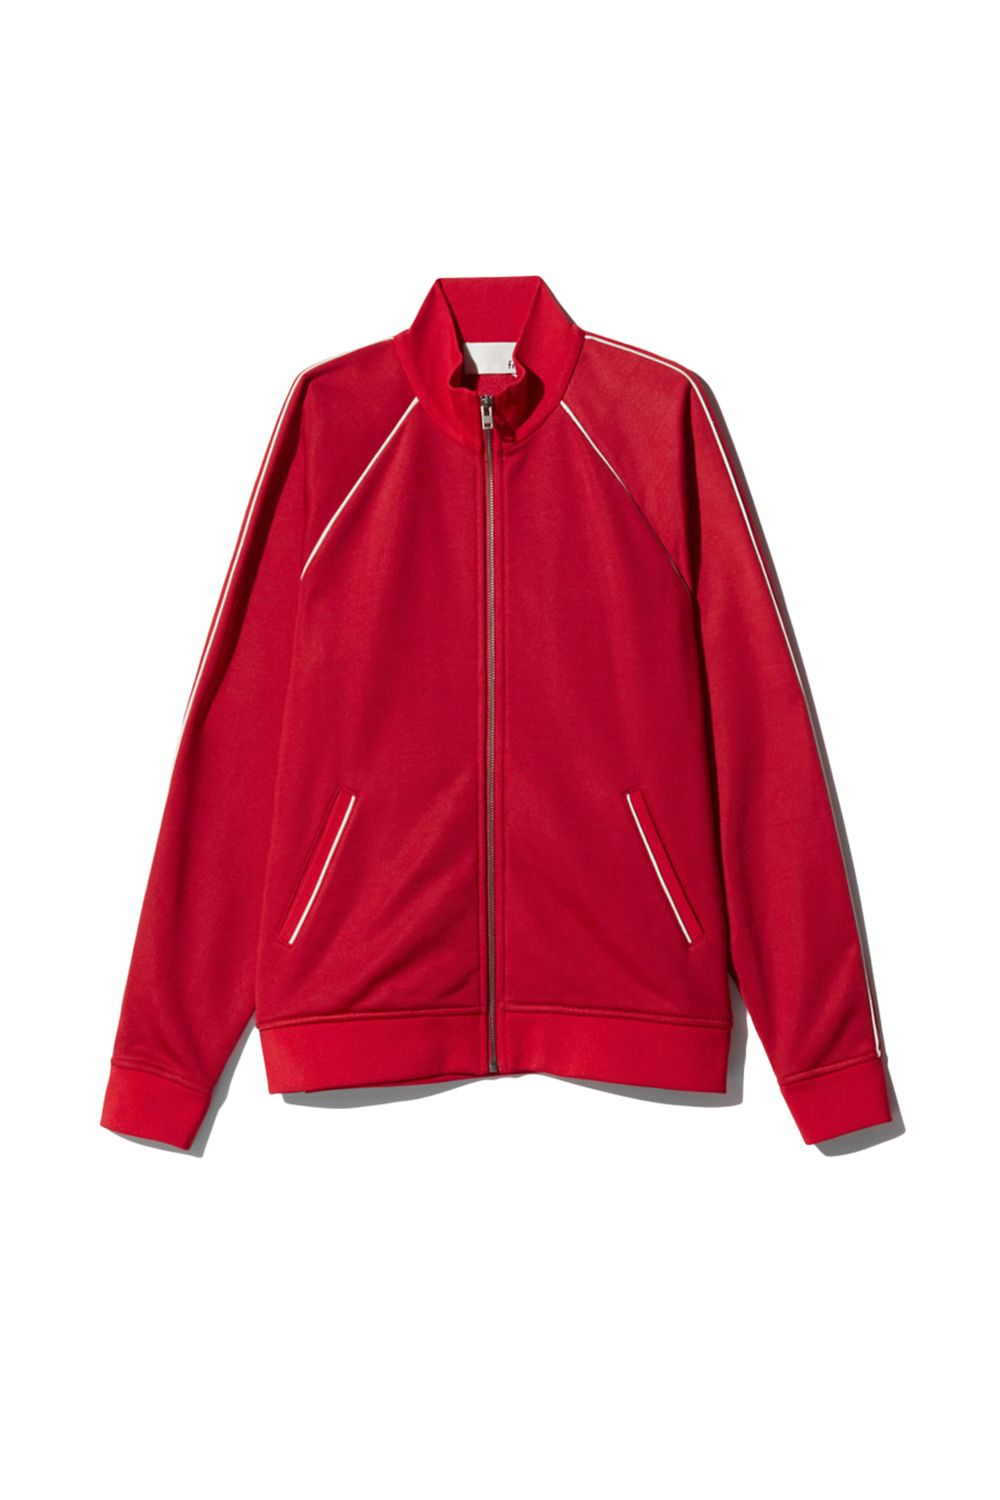 "<p>Over the little summer frocks you come traipsing in—only to realize, @#$%, it's chilly in here—a red track jacket is Chloé. </p><p>Aritzia, $78; <a href=""http://us.aritzia.com/product/gottschalk-sweater/62023.html?dwvar_62023_color=12790"" target=""_blank"" data-tracking-id=""recirc-text-link"">aritzia.com</a>.</p>"